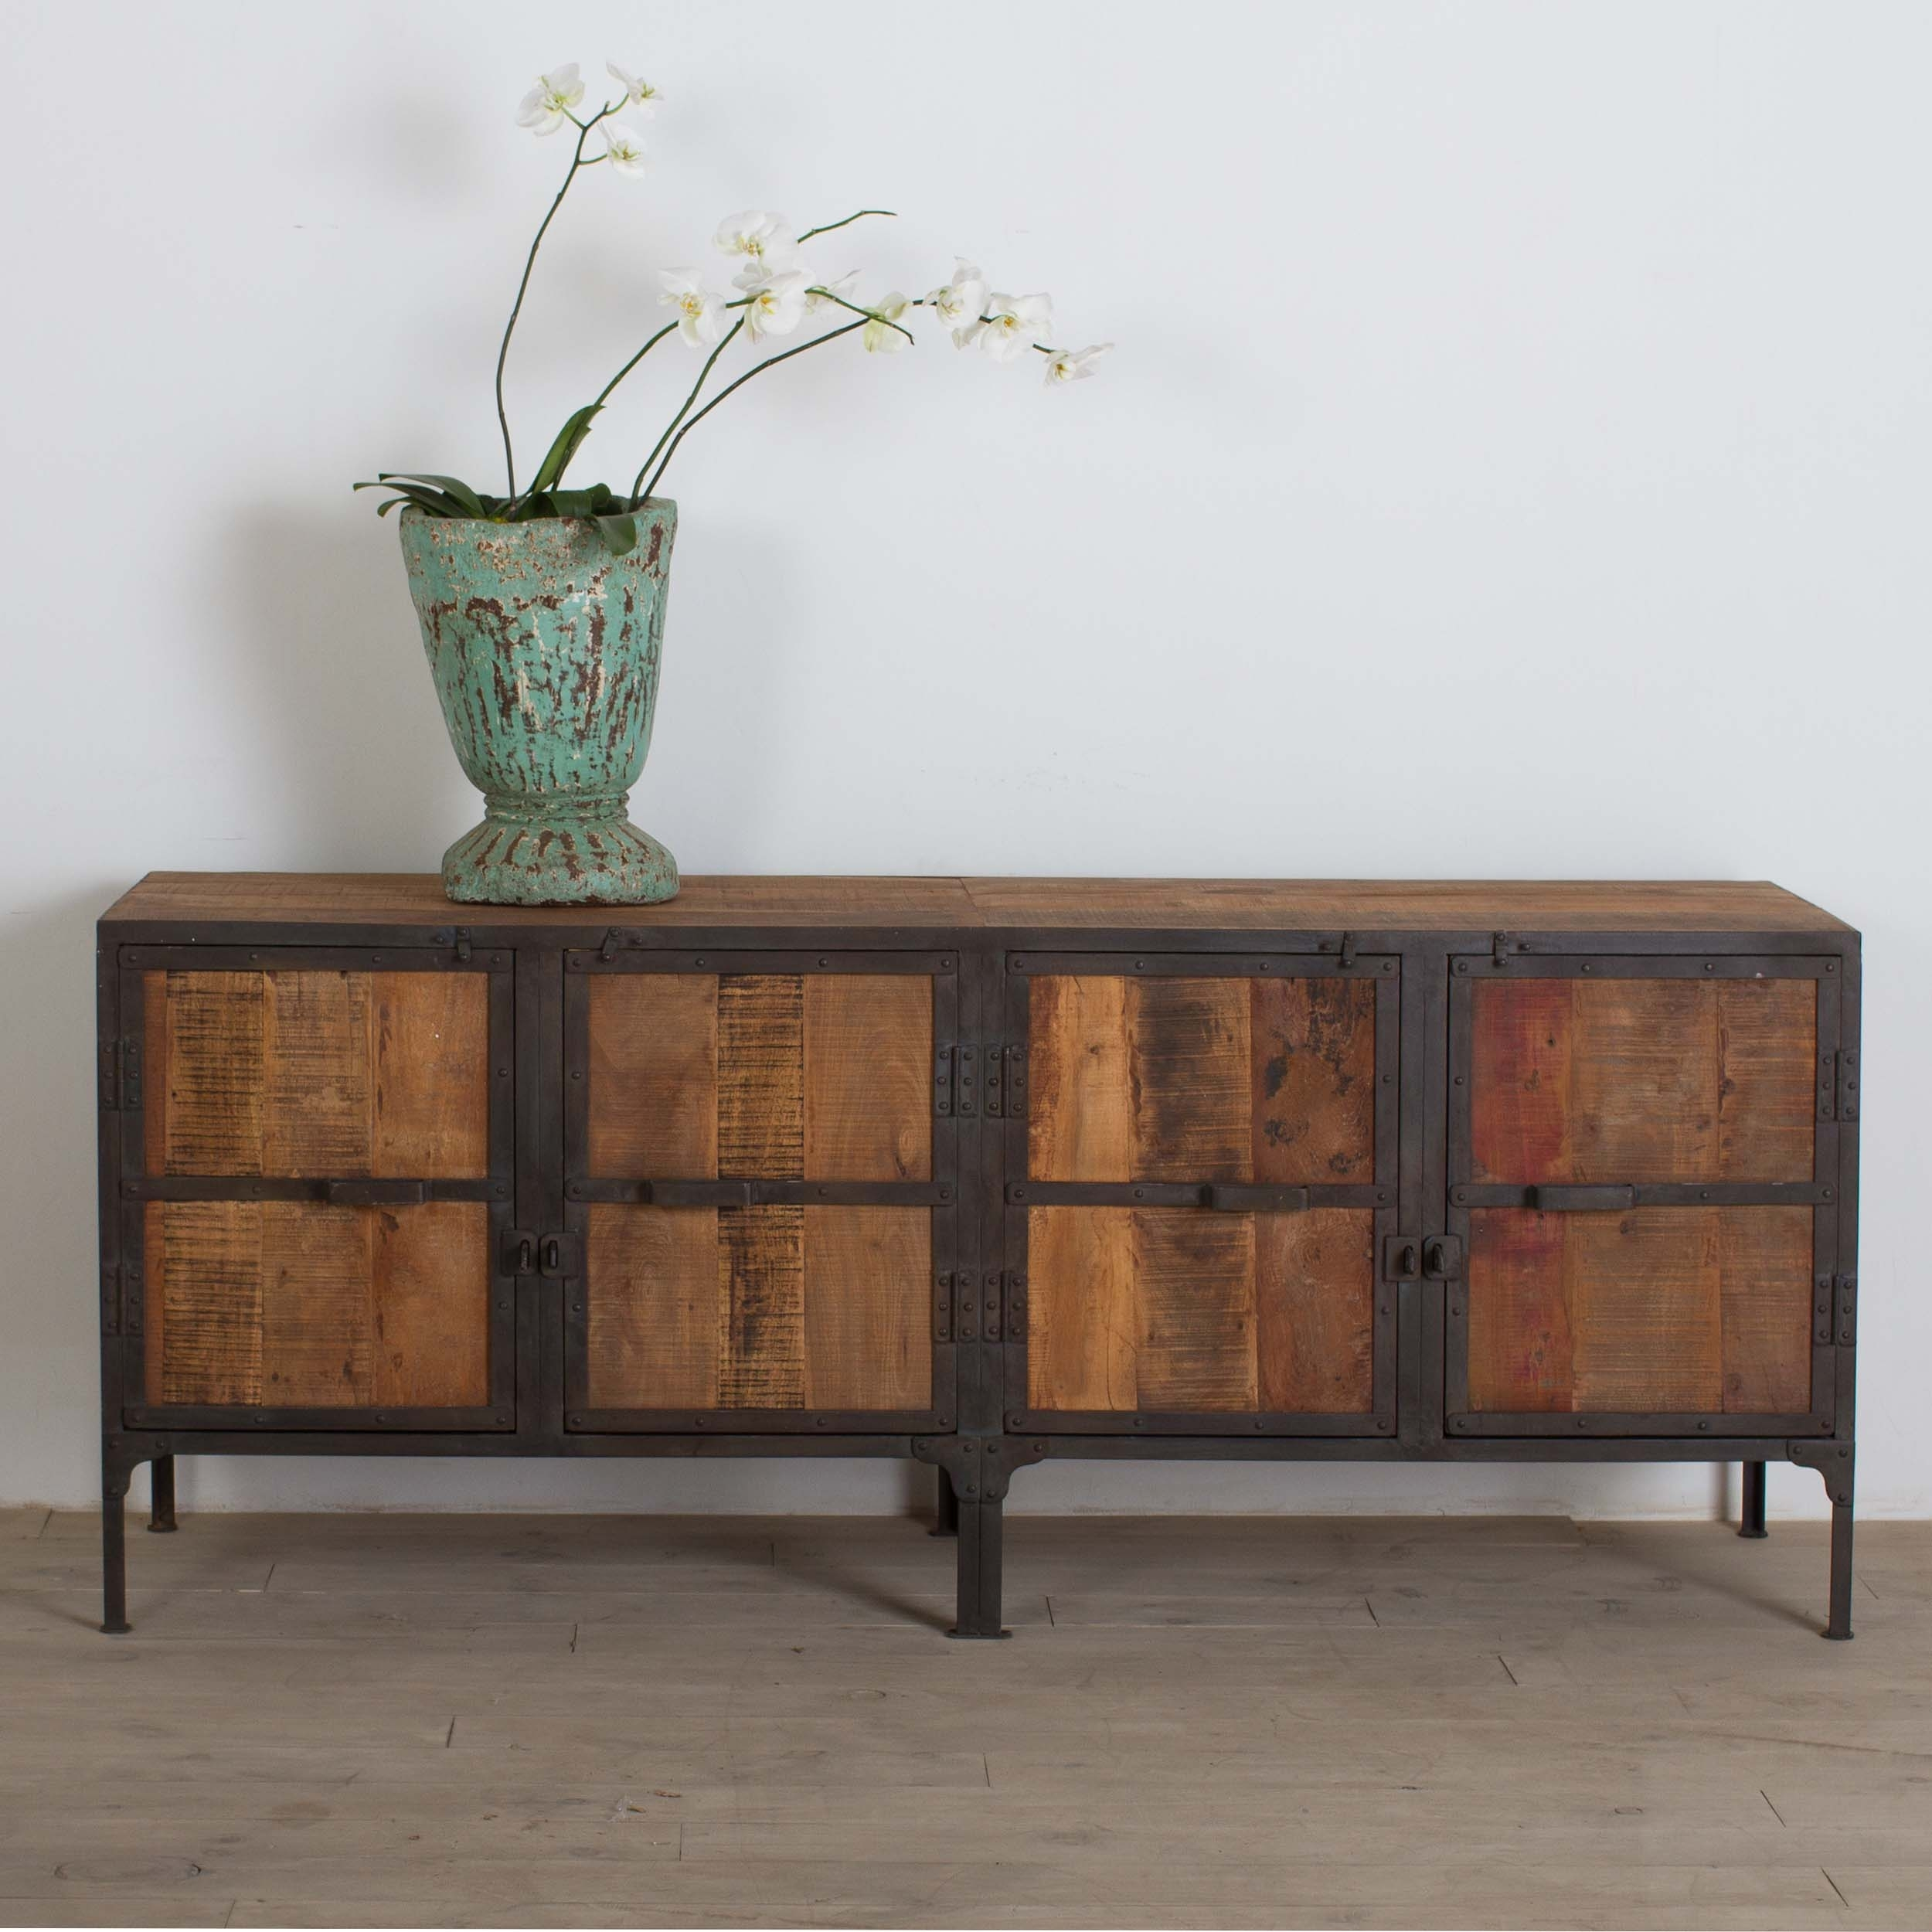 Shop Handmade Cg Sparks Handmade Hyderabad Reclaimed Wood And Metal within Black Oak Wood And Wrought Iron Sideboards (Image 22 of 30)